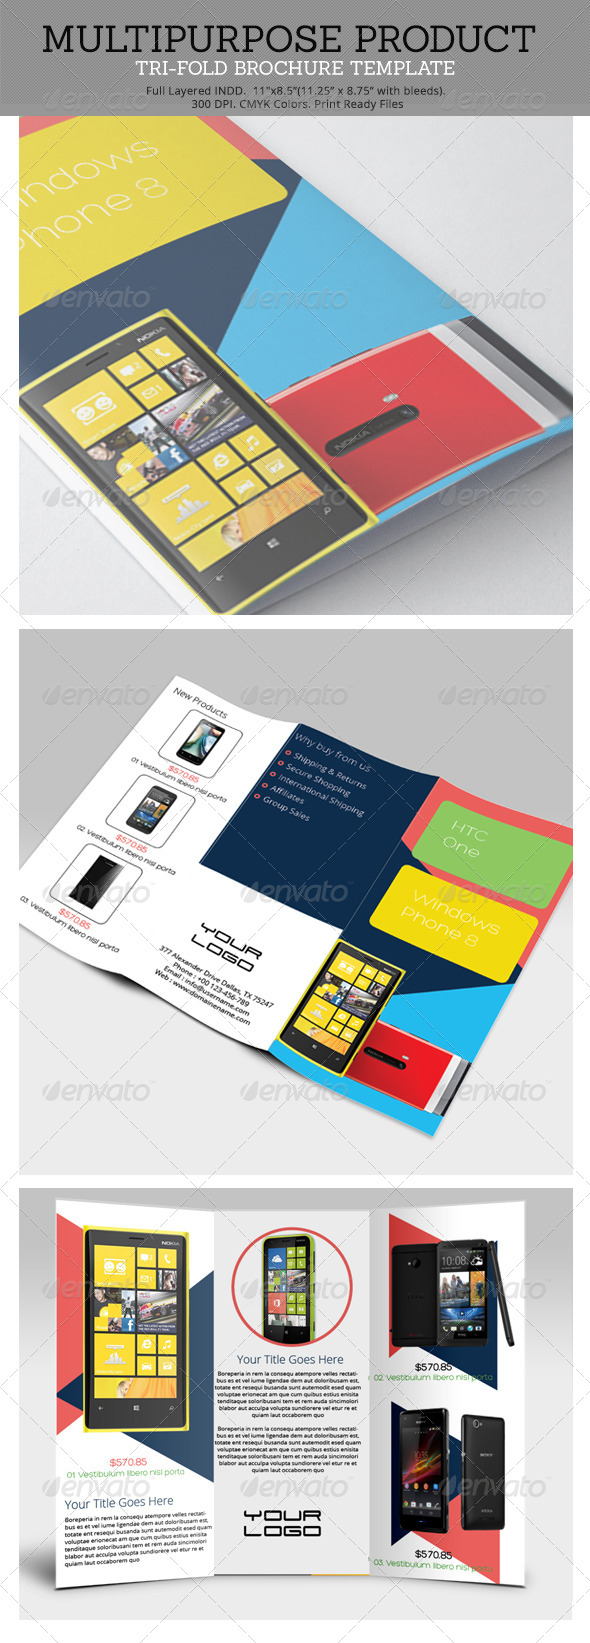 Multipurpose Product Tri-Fold Brochure Template - Brochures Print Templates